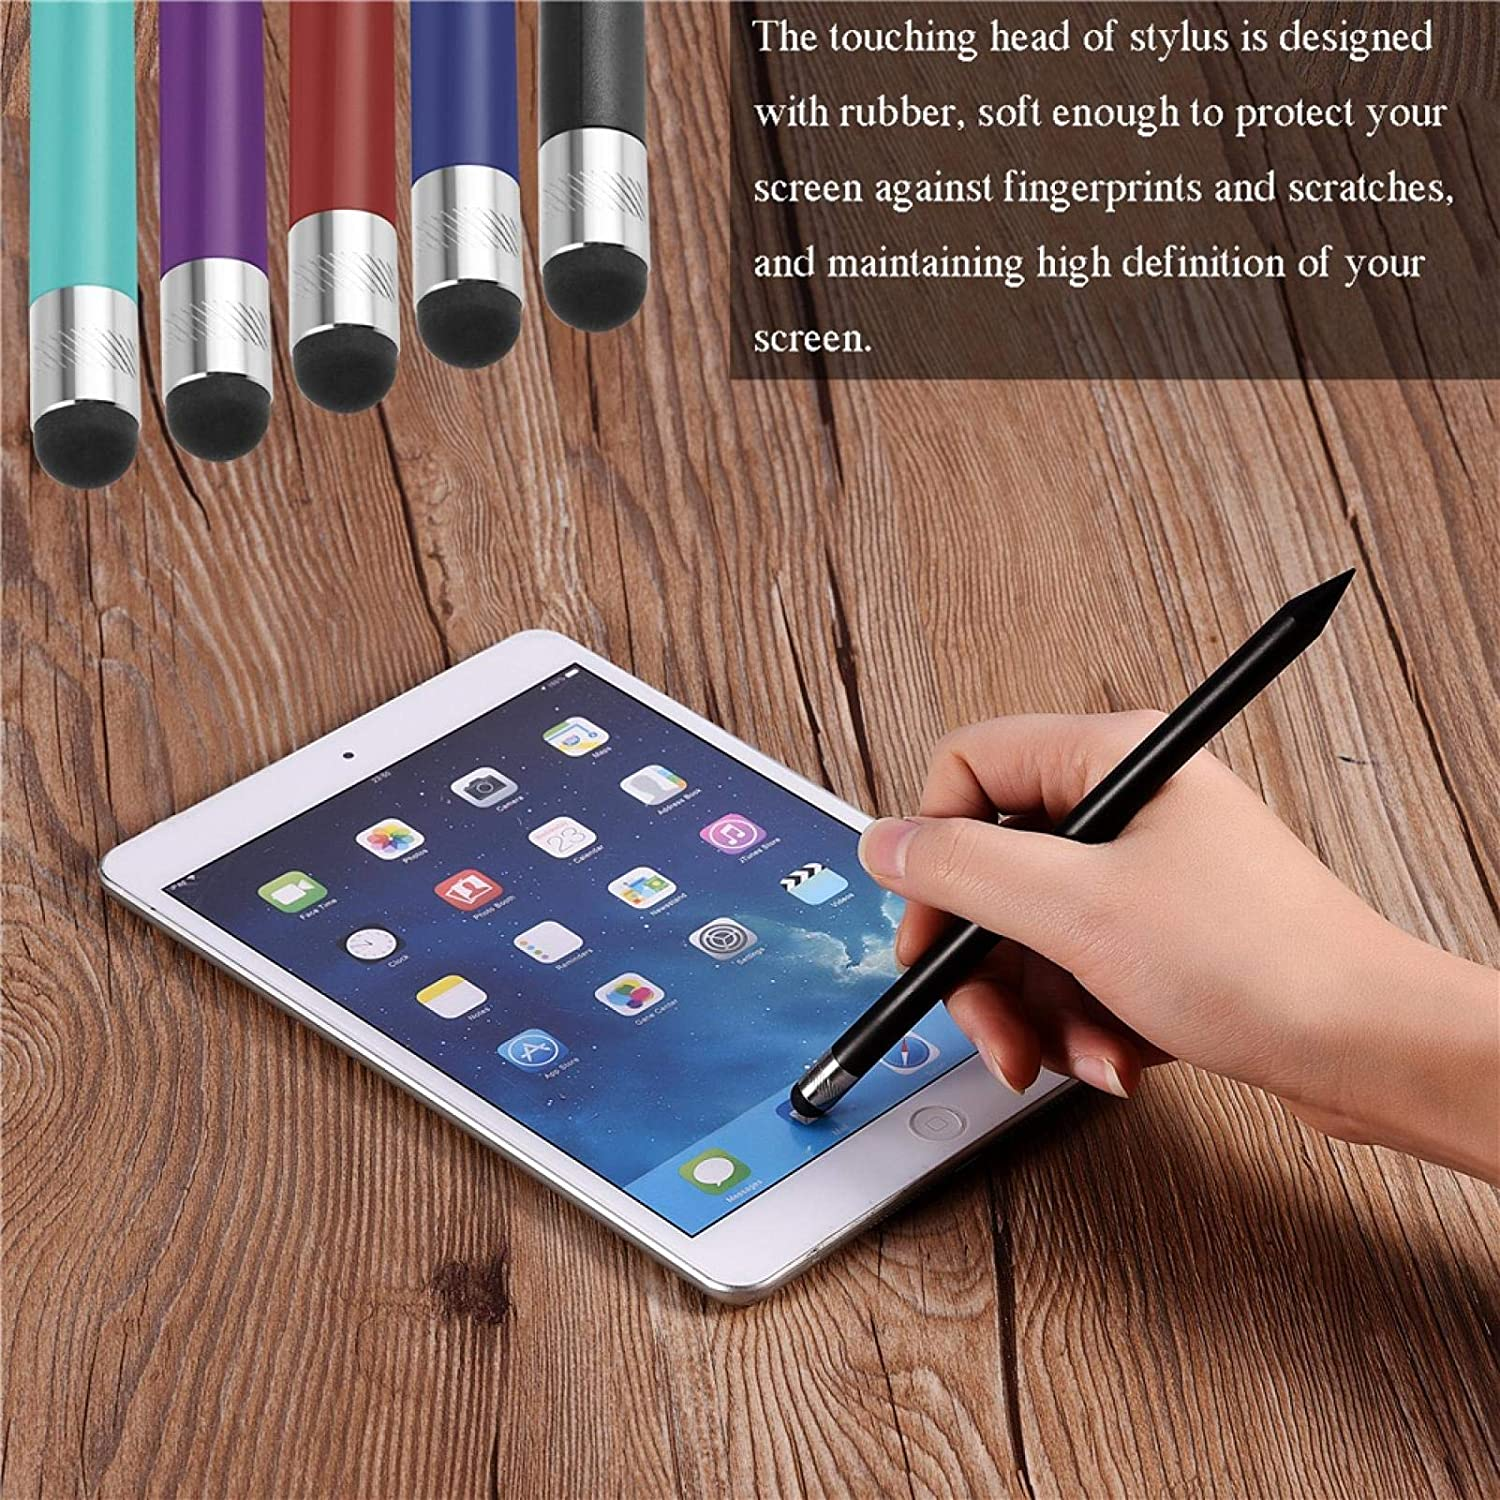 EBTOOLS Active Stylus Pen, Mini Portable High Sensitivity Replacement Capacitive Touch Screen Stylus, Used for Touch Screen Electronic Devices(Dark Blue)